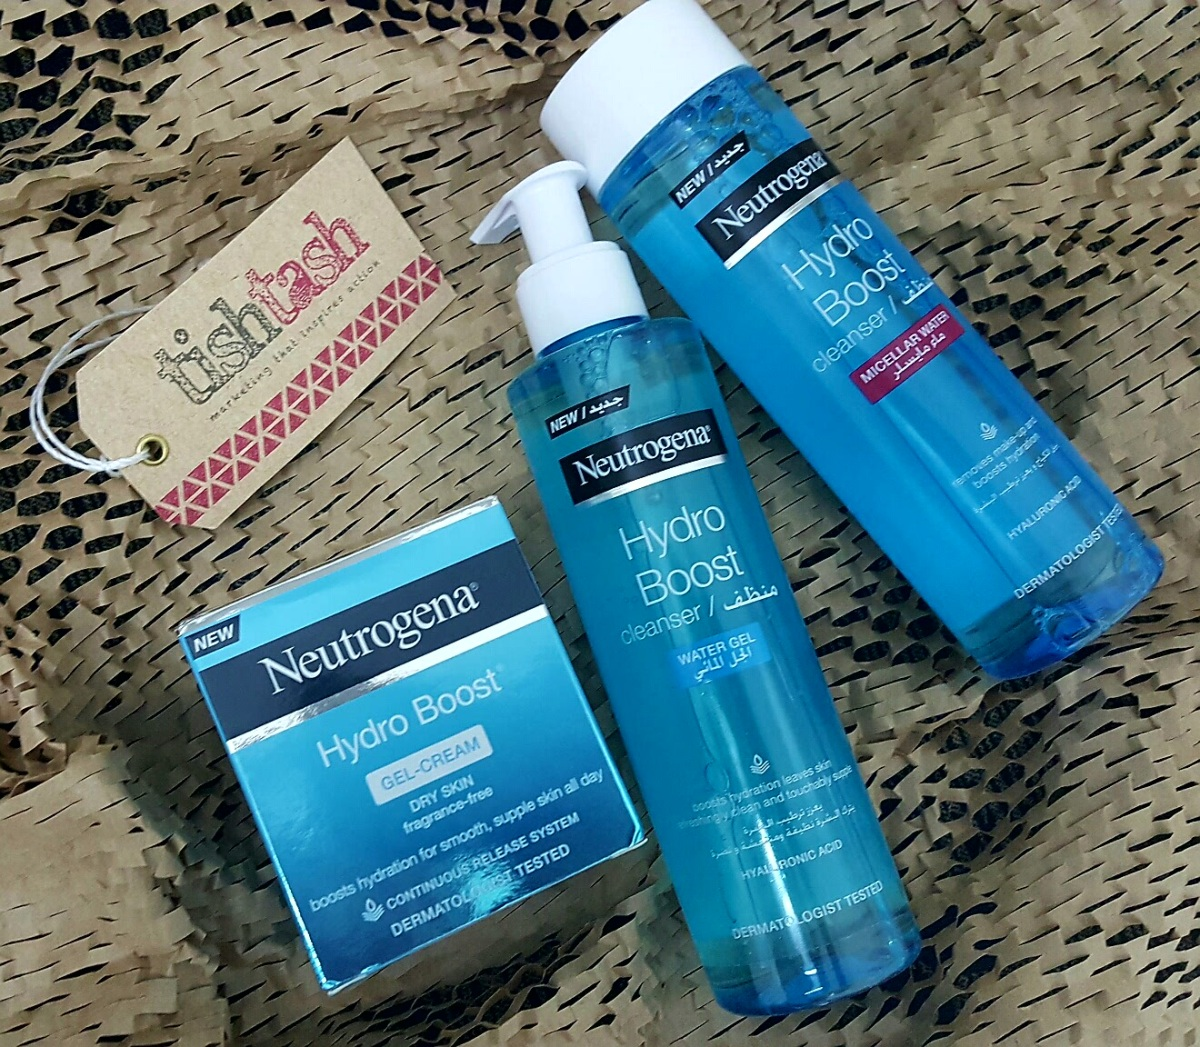 FREE EVALUATION: Found my Hydro Boost range of Neutrogena  from Tish Tash